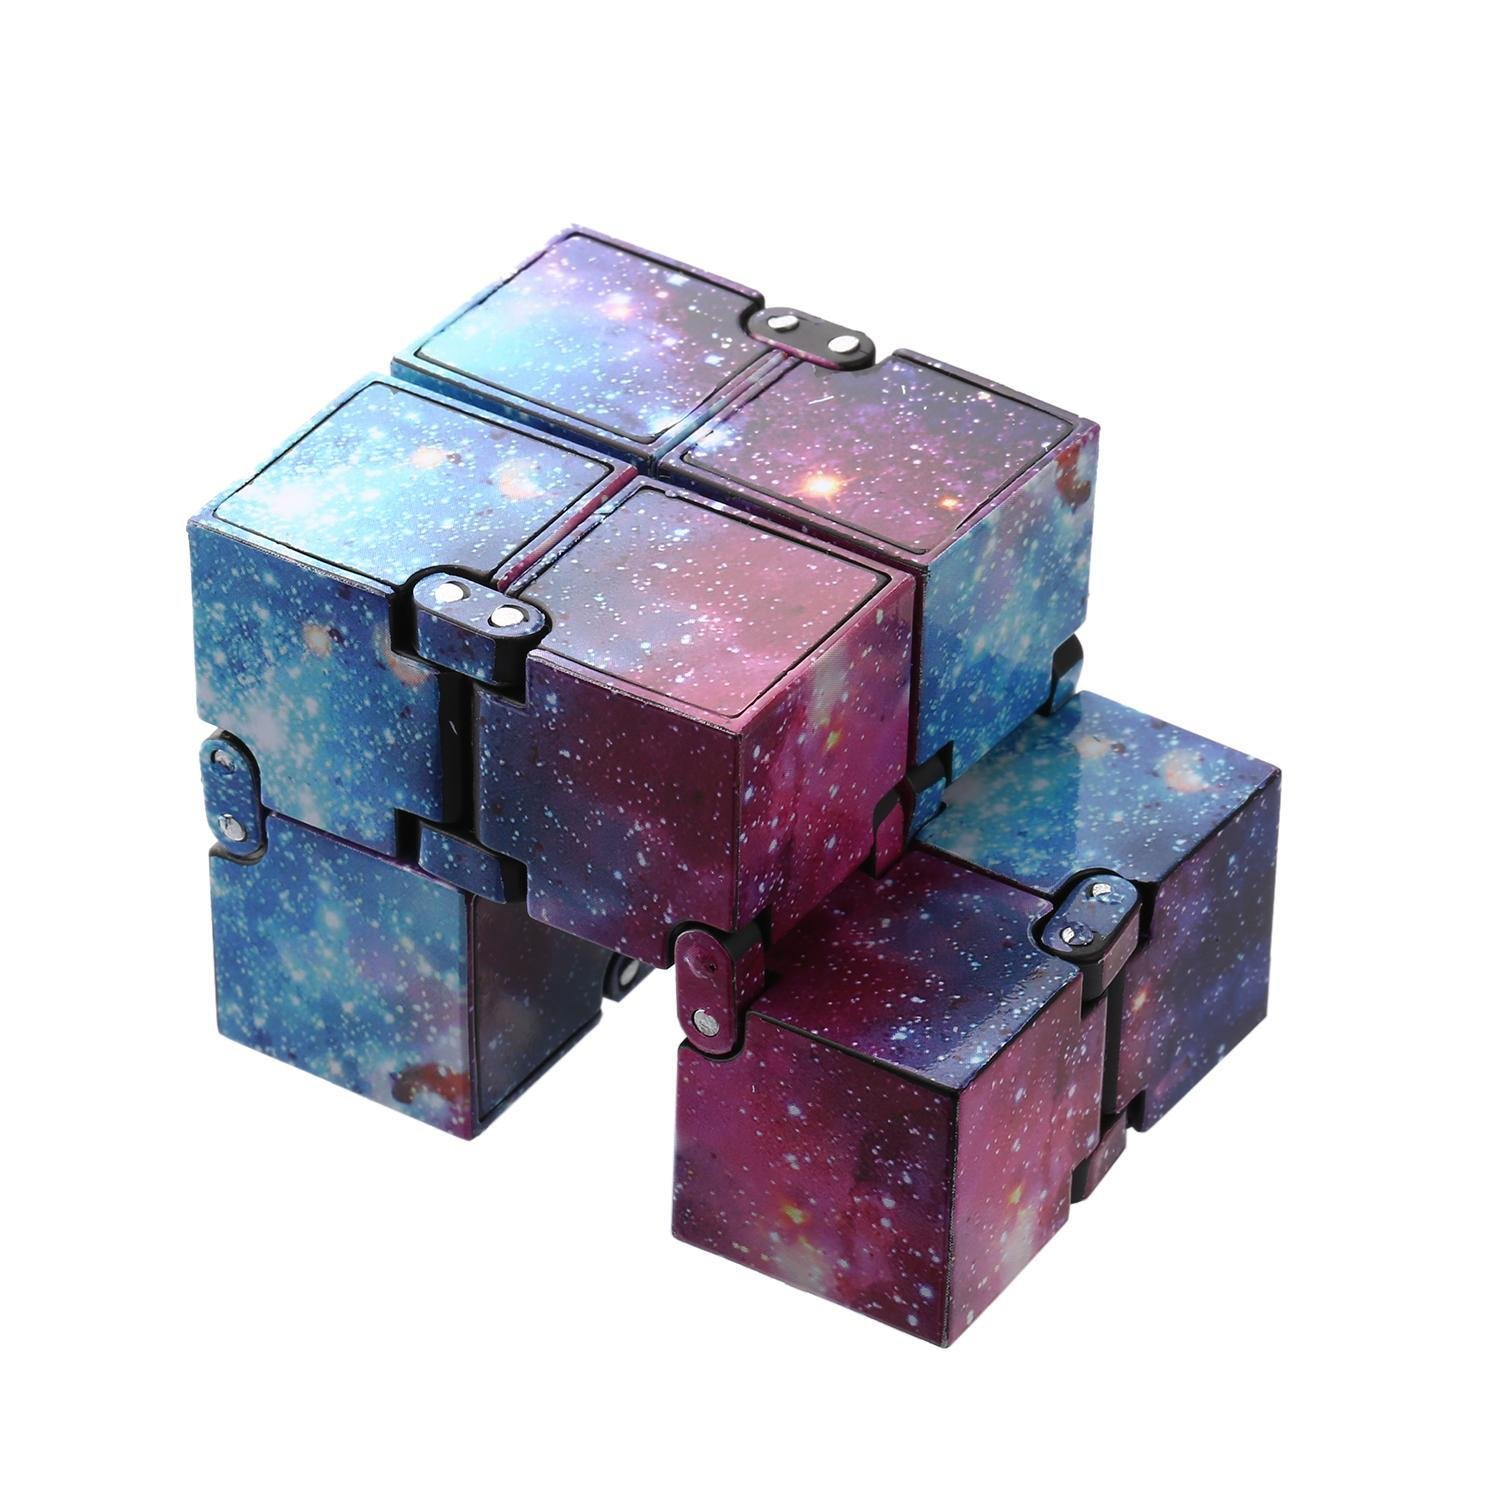 Kikole Colorful Infinity Cube for Stress Relief Anti Anxiety Stress Funny Toy Novelty Spinning Tops